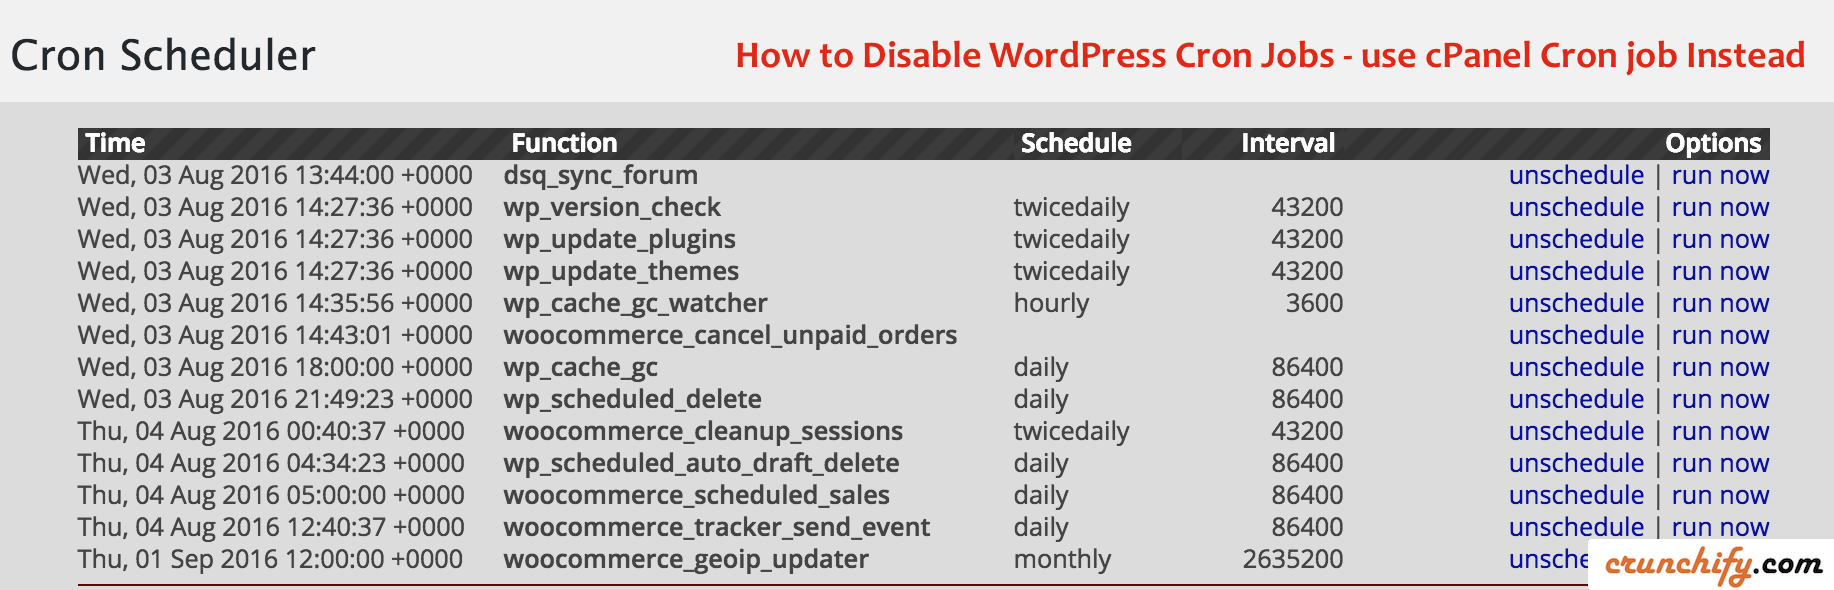 How to Disable WordPress Cron Jobs - use cPanel Cron job instead